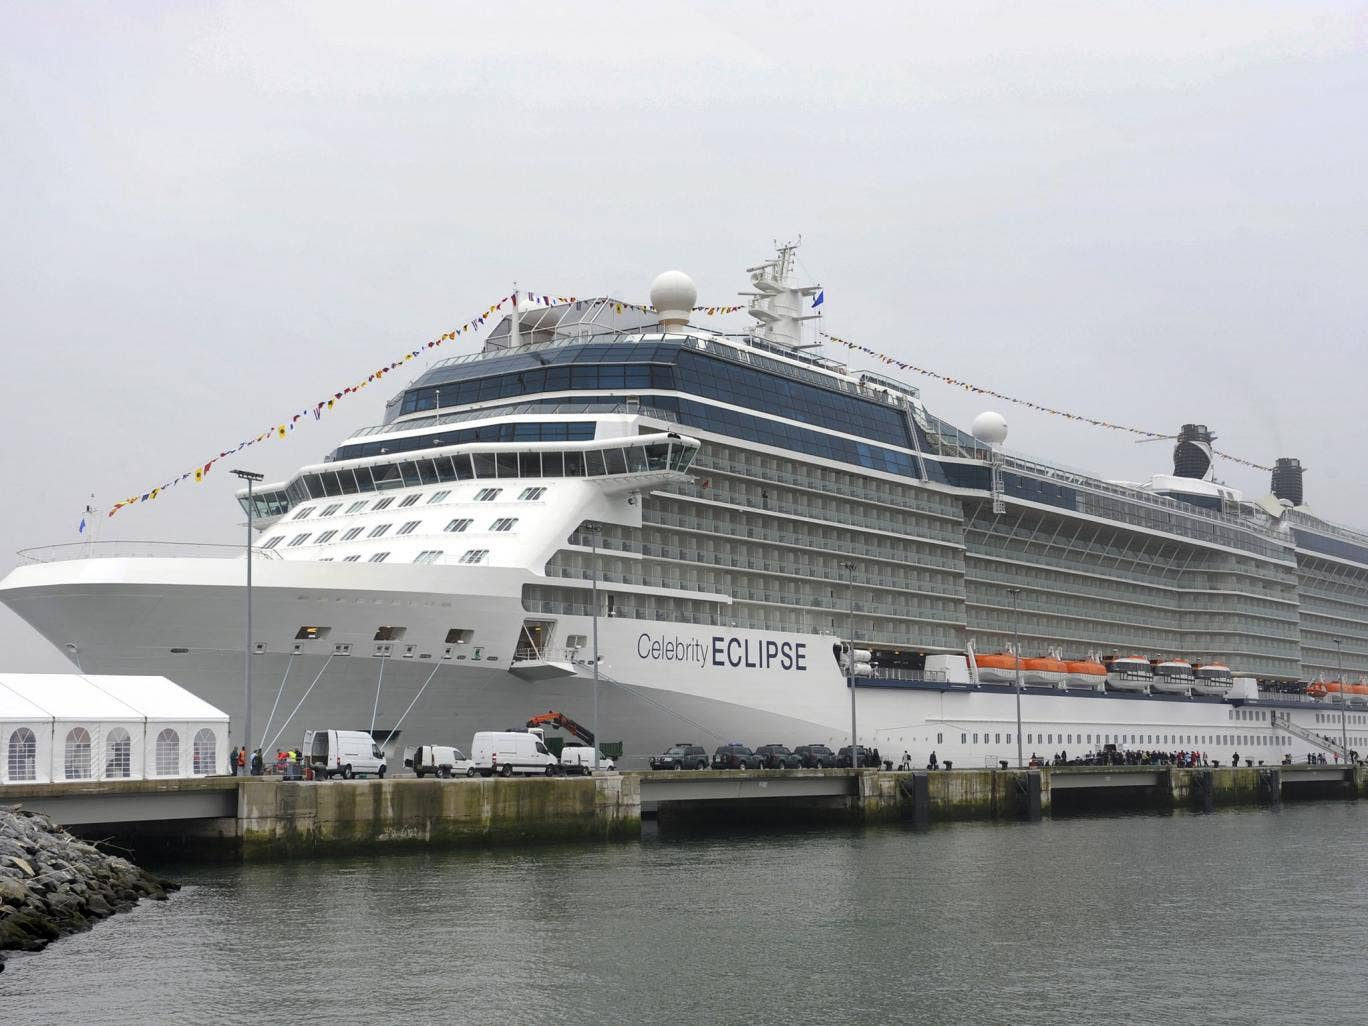 The 'Celebrity Eclipse' cruise liner